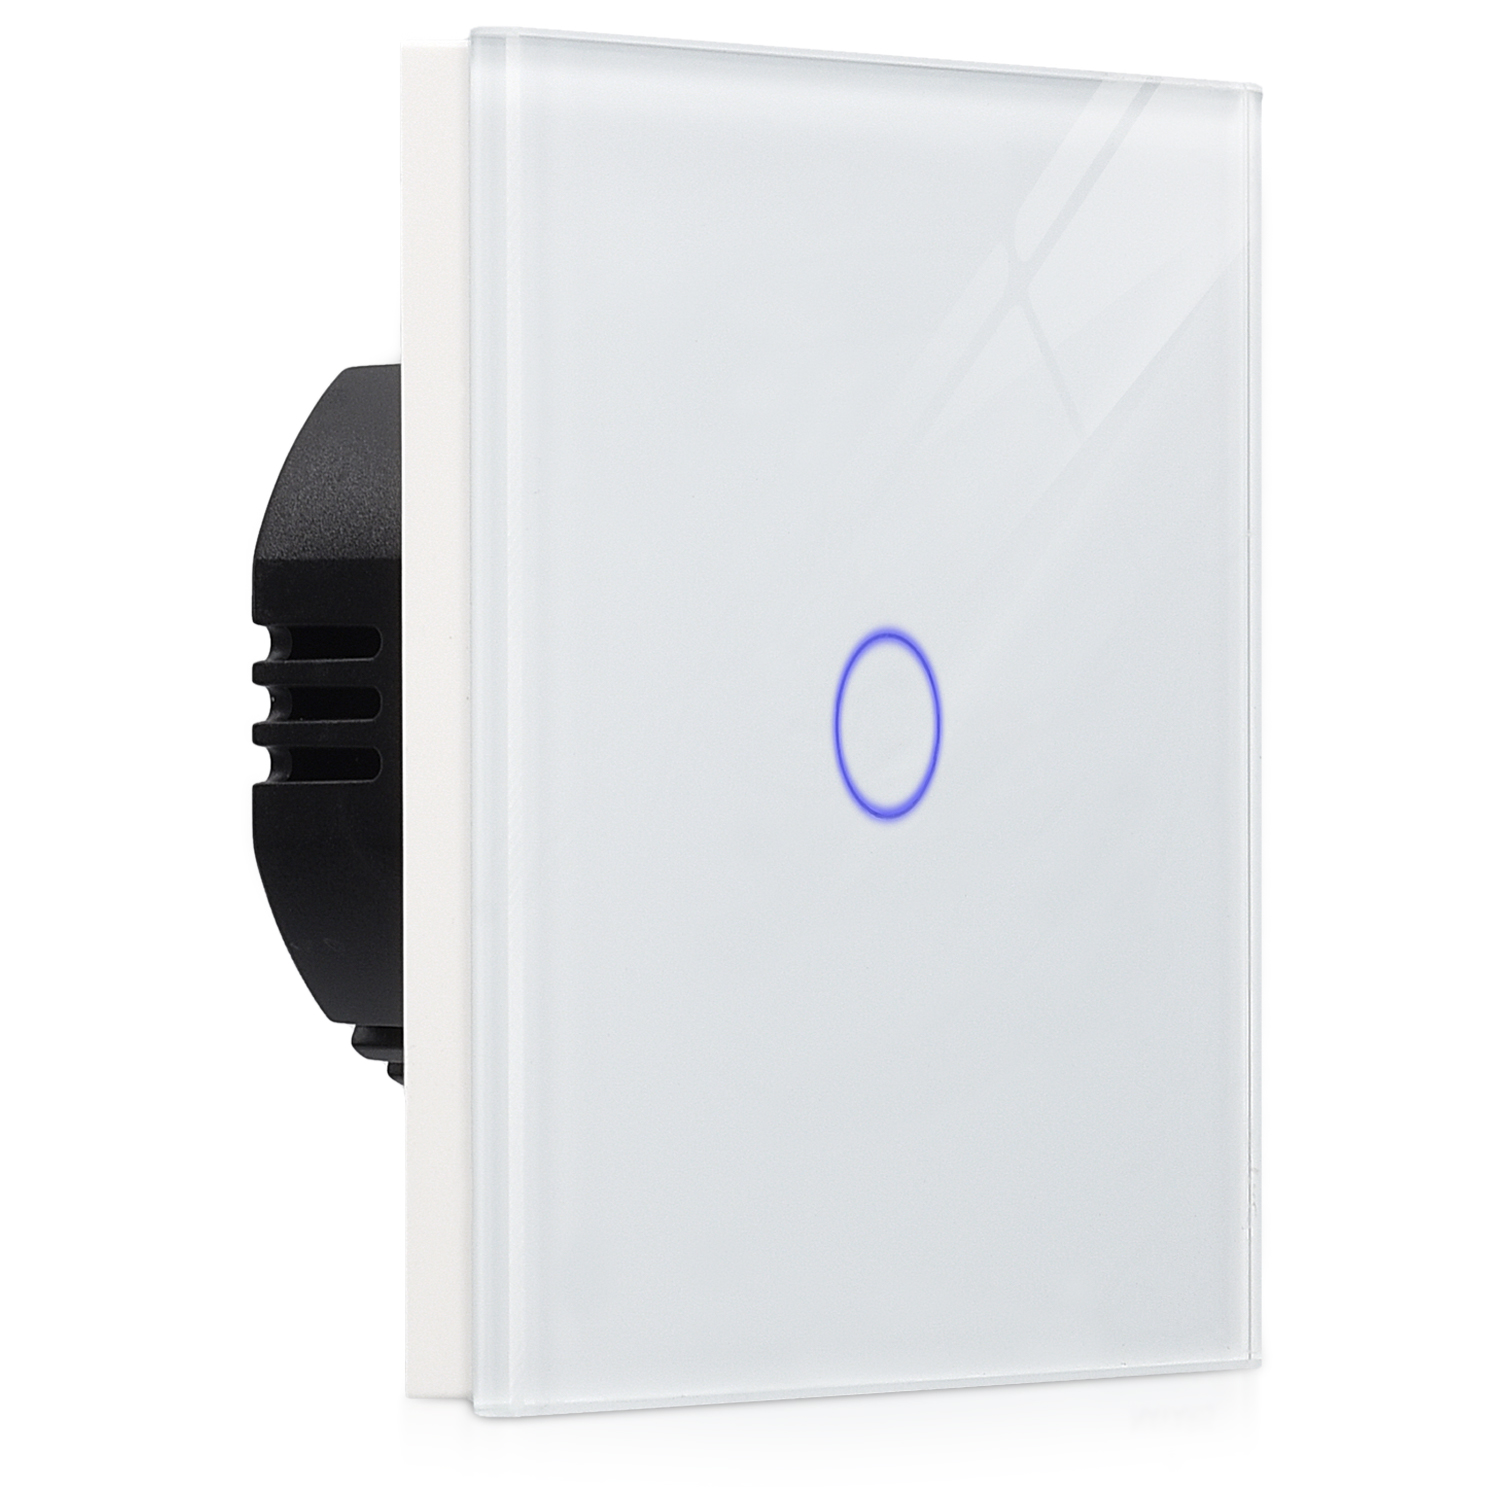 Glass Panel Touchscreen Wall Light Switch With Led Indicator 1